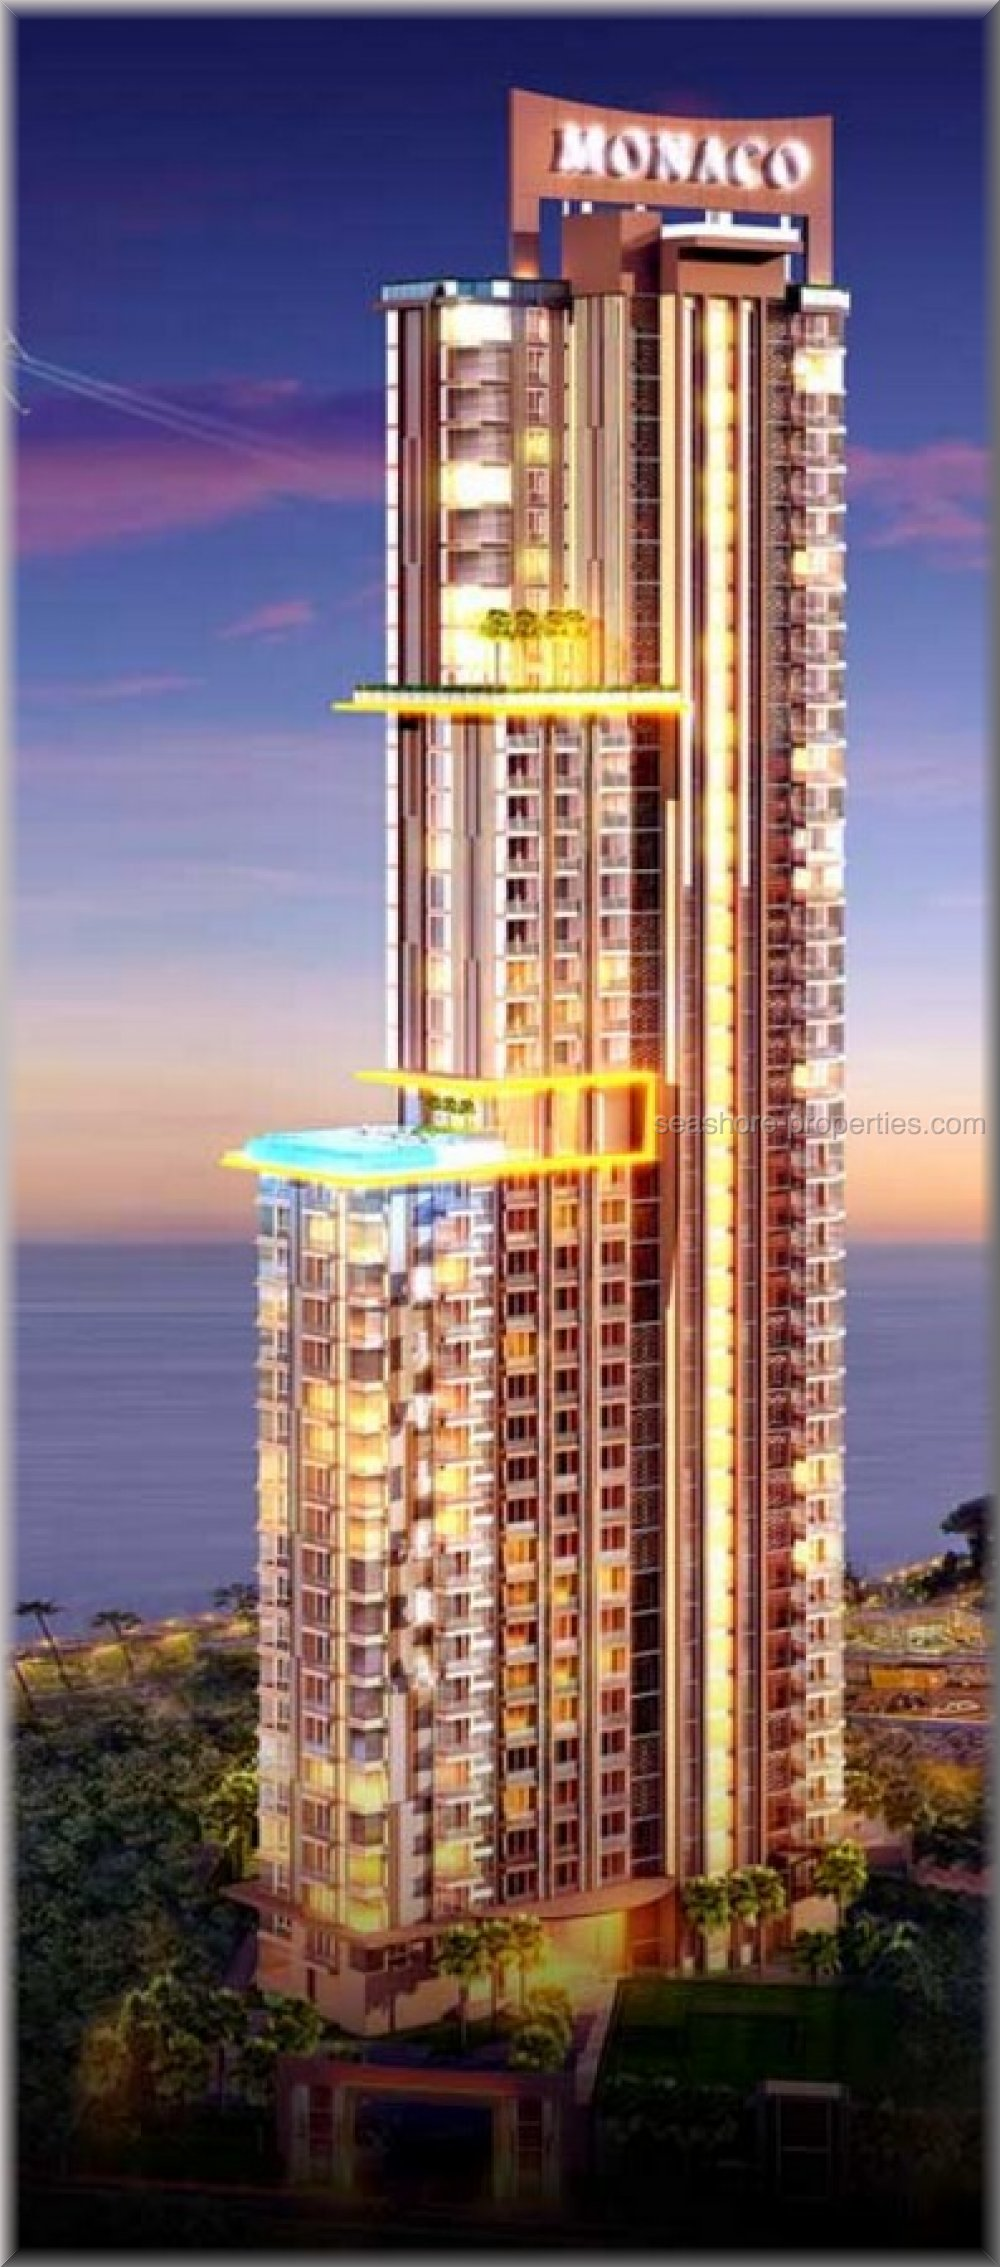 riviera monaco 2 bedrooms seaview  Condominiums te koop In Jomtien Pattaya